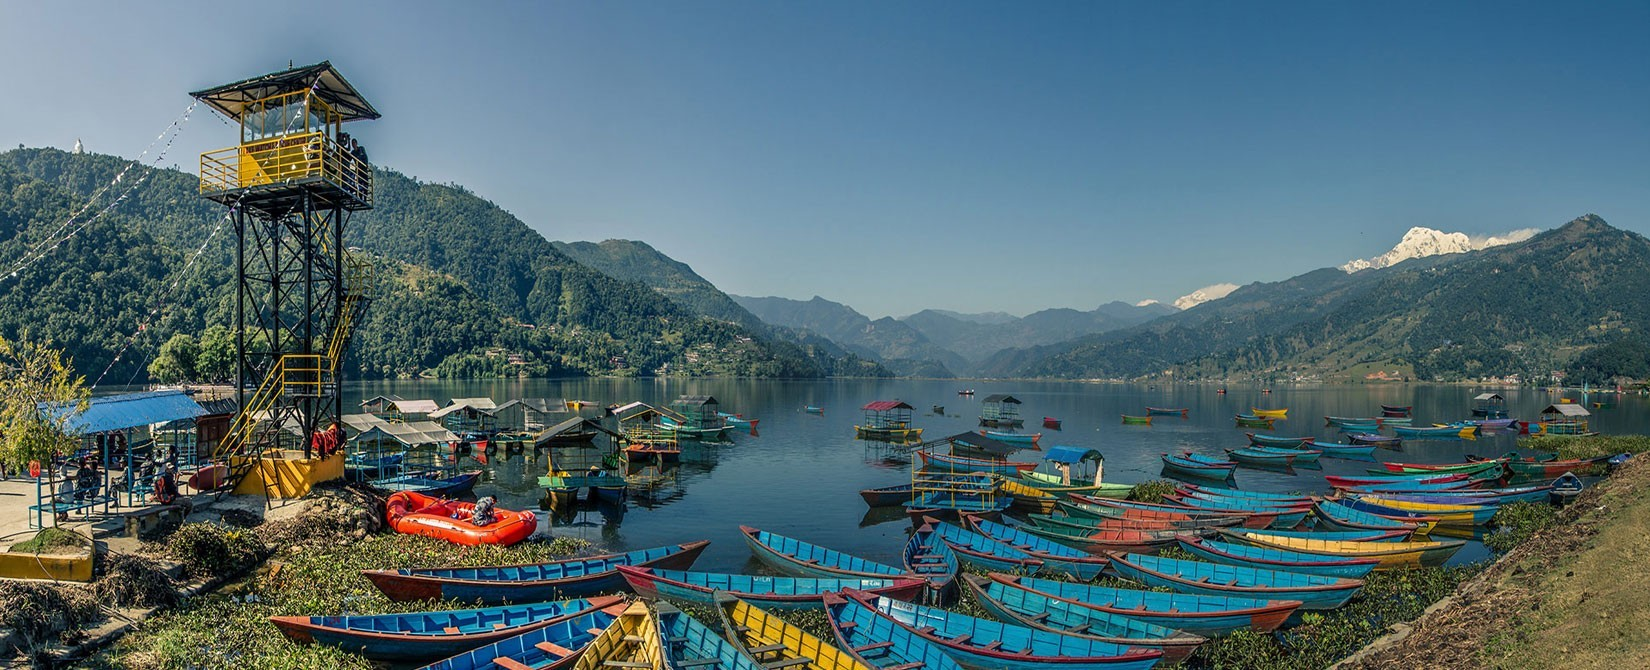 Pokhara lake site